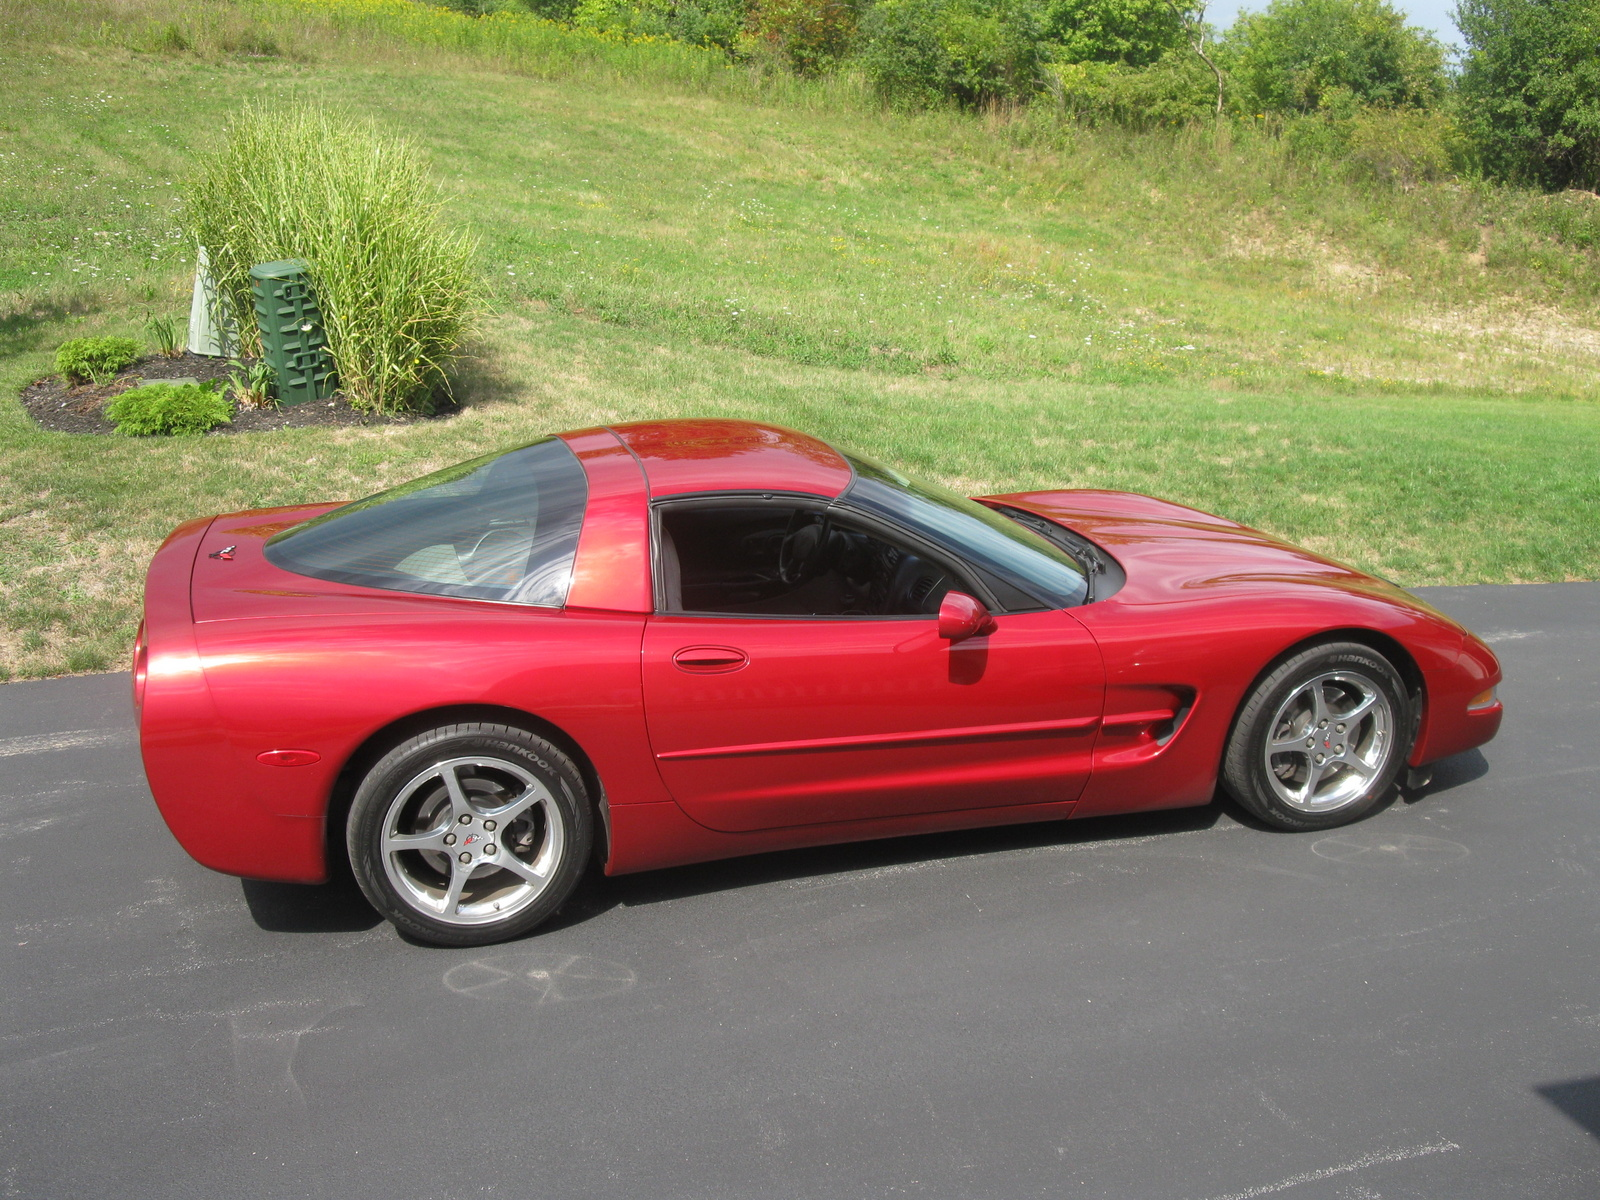 Picture of 2013 Chevrolet Corvette Base 2LT, exterior